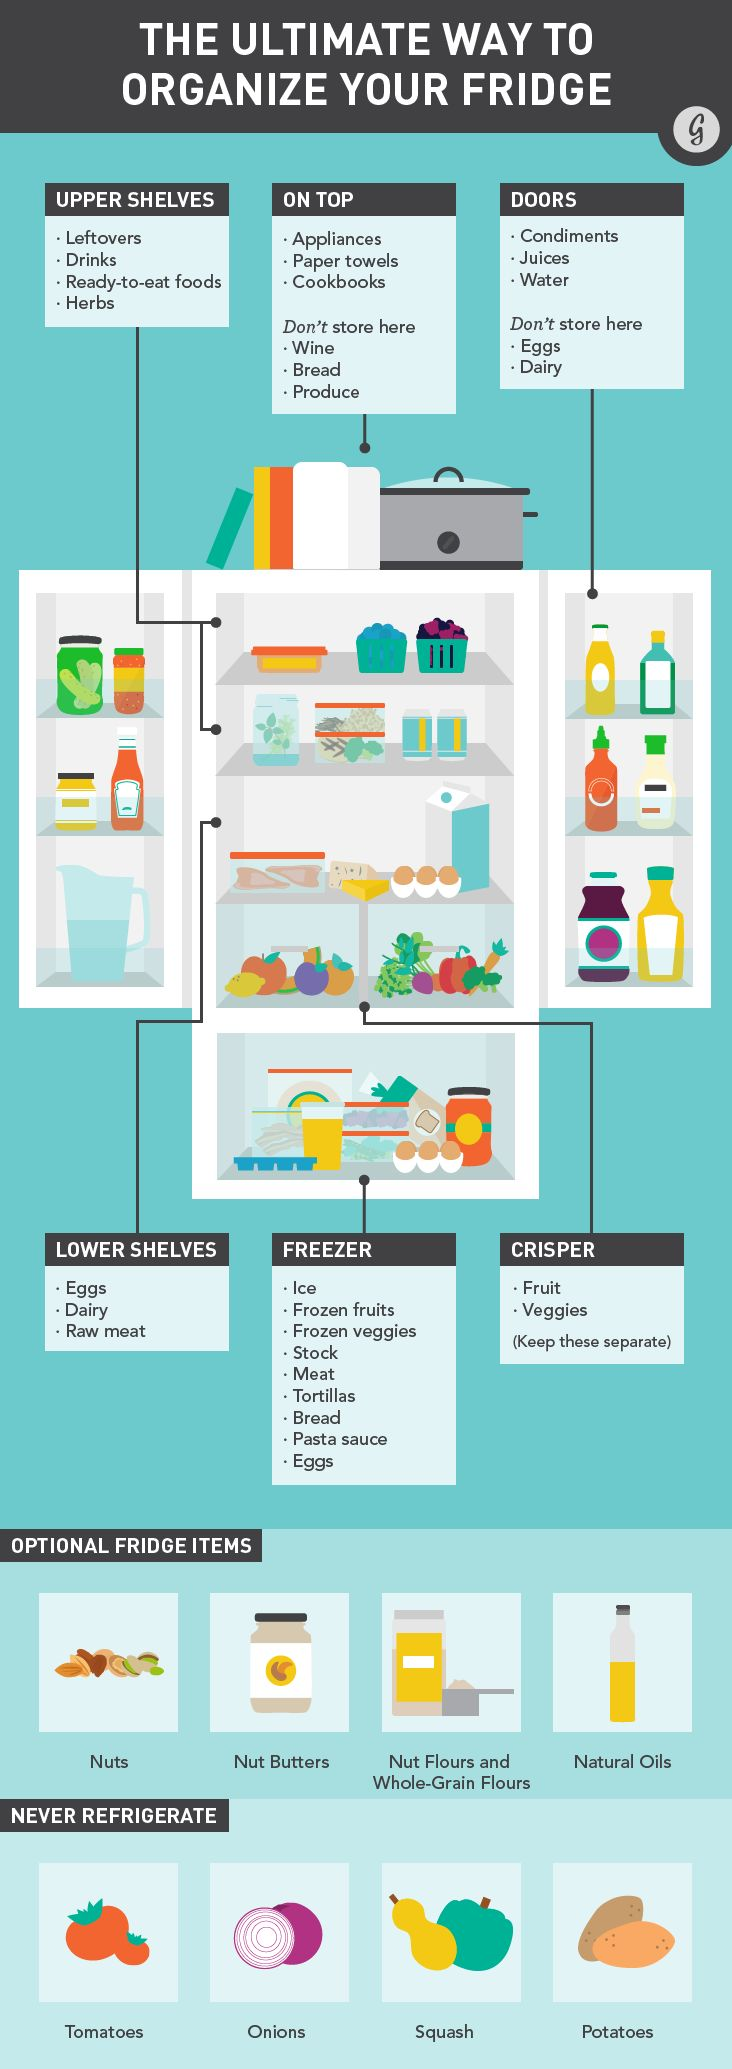 organize your fridge